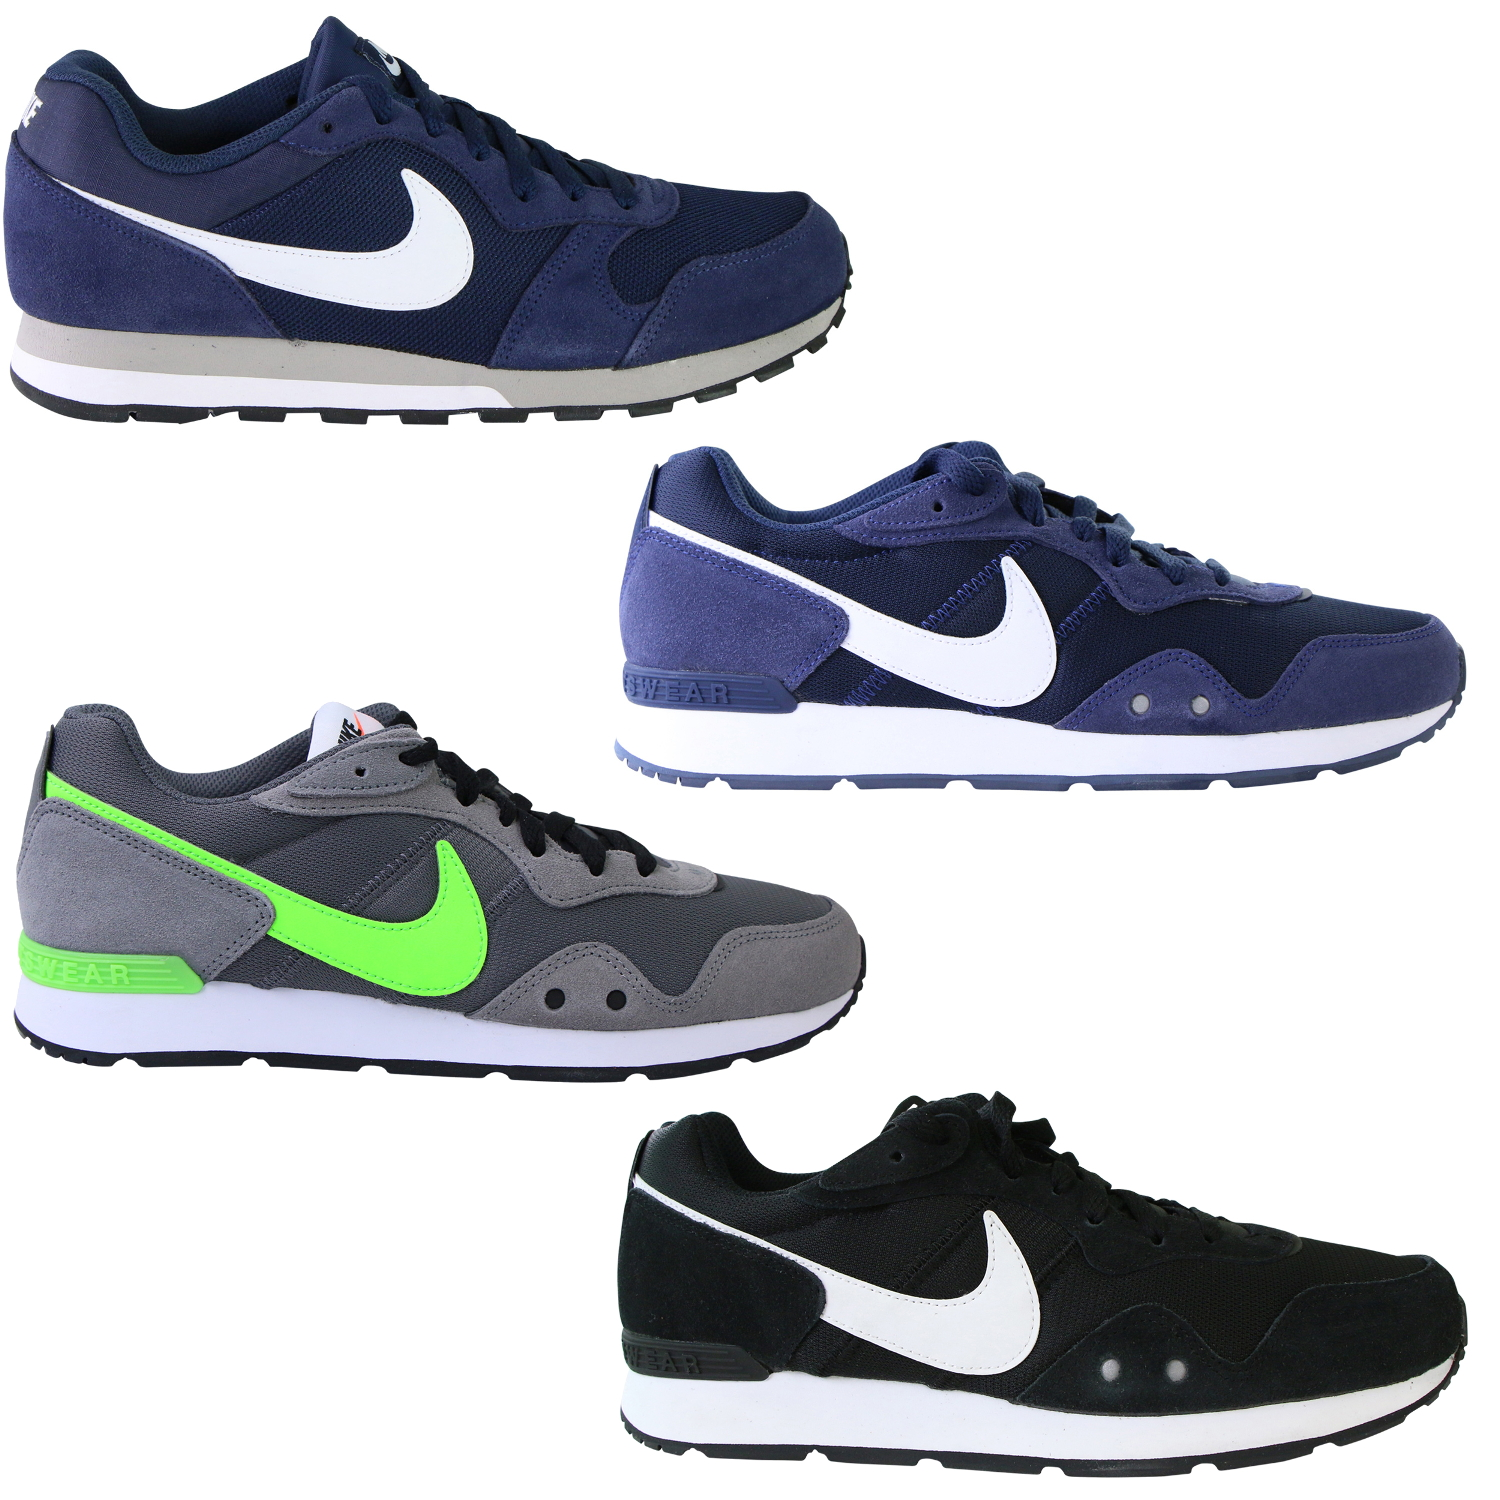 competitive price 38f1e 500a6 Nike MD Runner 2 Herren